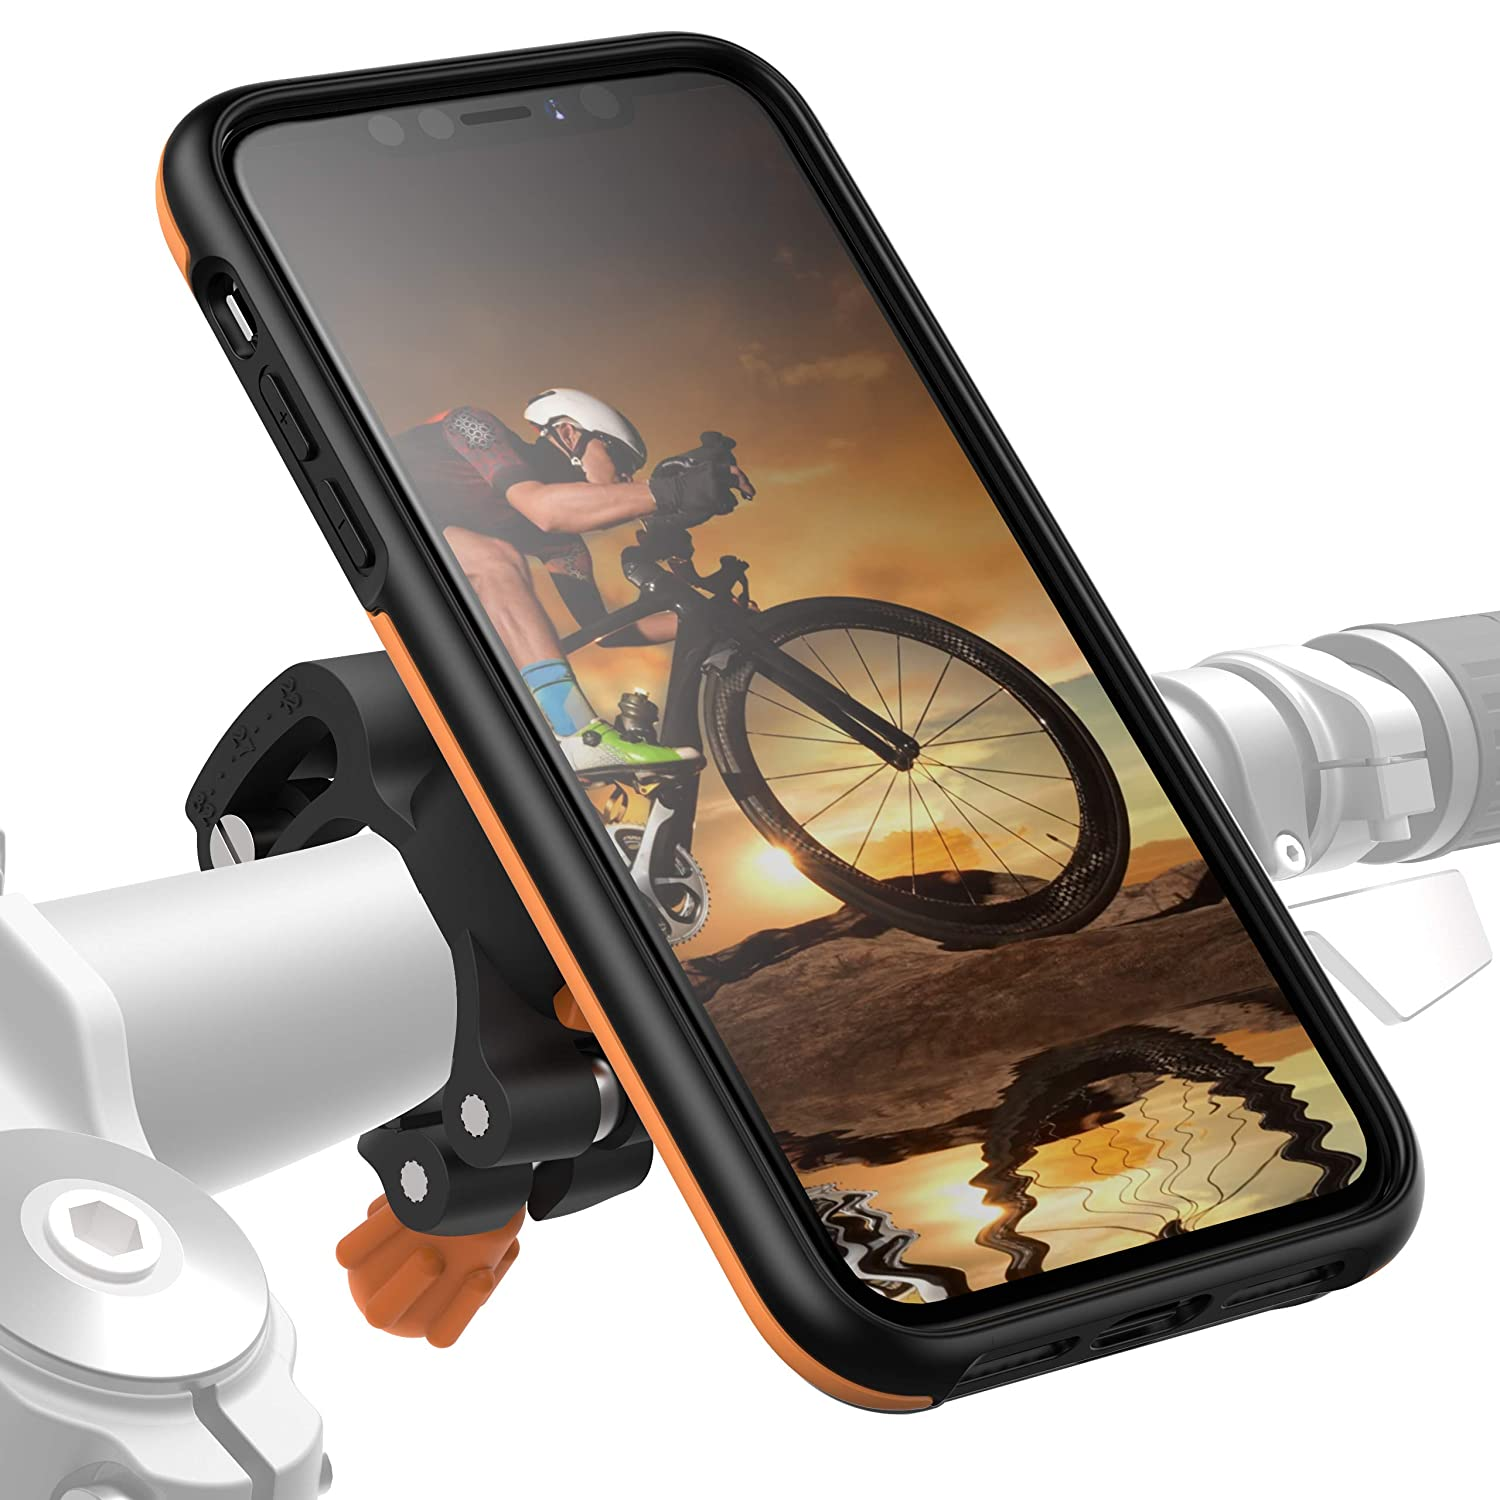 MORPHEUS LABS M4s iPhone 11 Bike Mount Bike Kit for iPhone 11 Black 360 Rotation Stand fits Most Handlebars Adjustable Bicycle Cell Phone Holder Phone Holder /& iPhone 11 Case